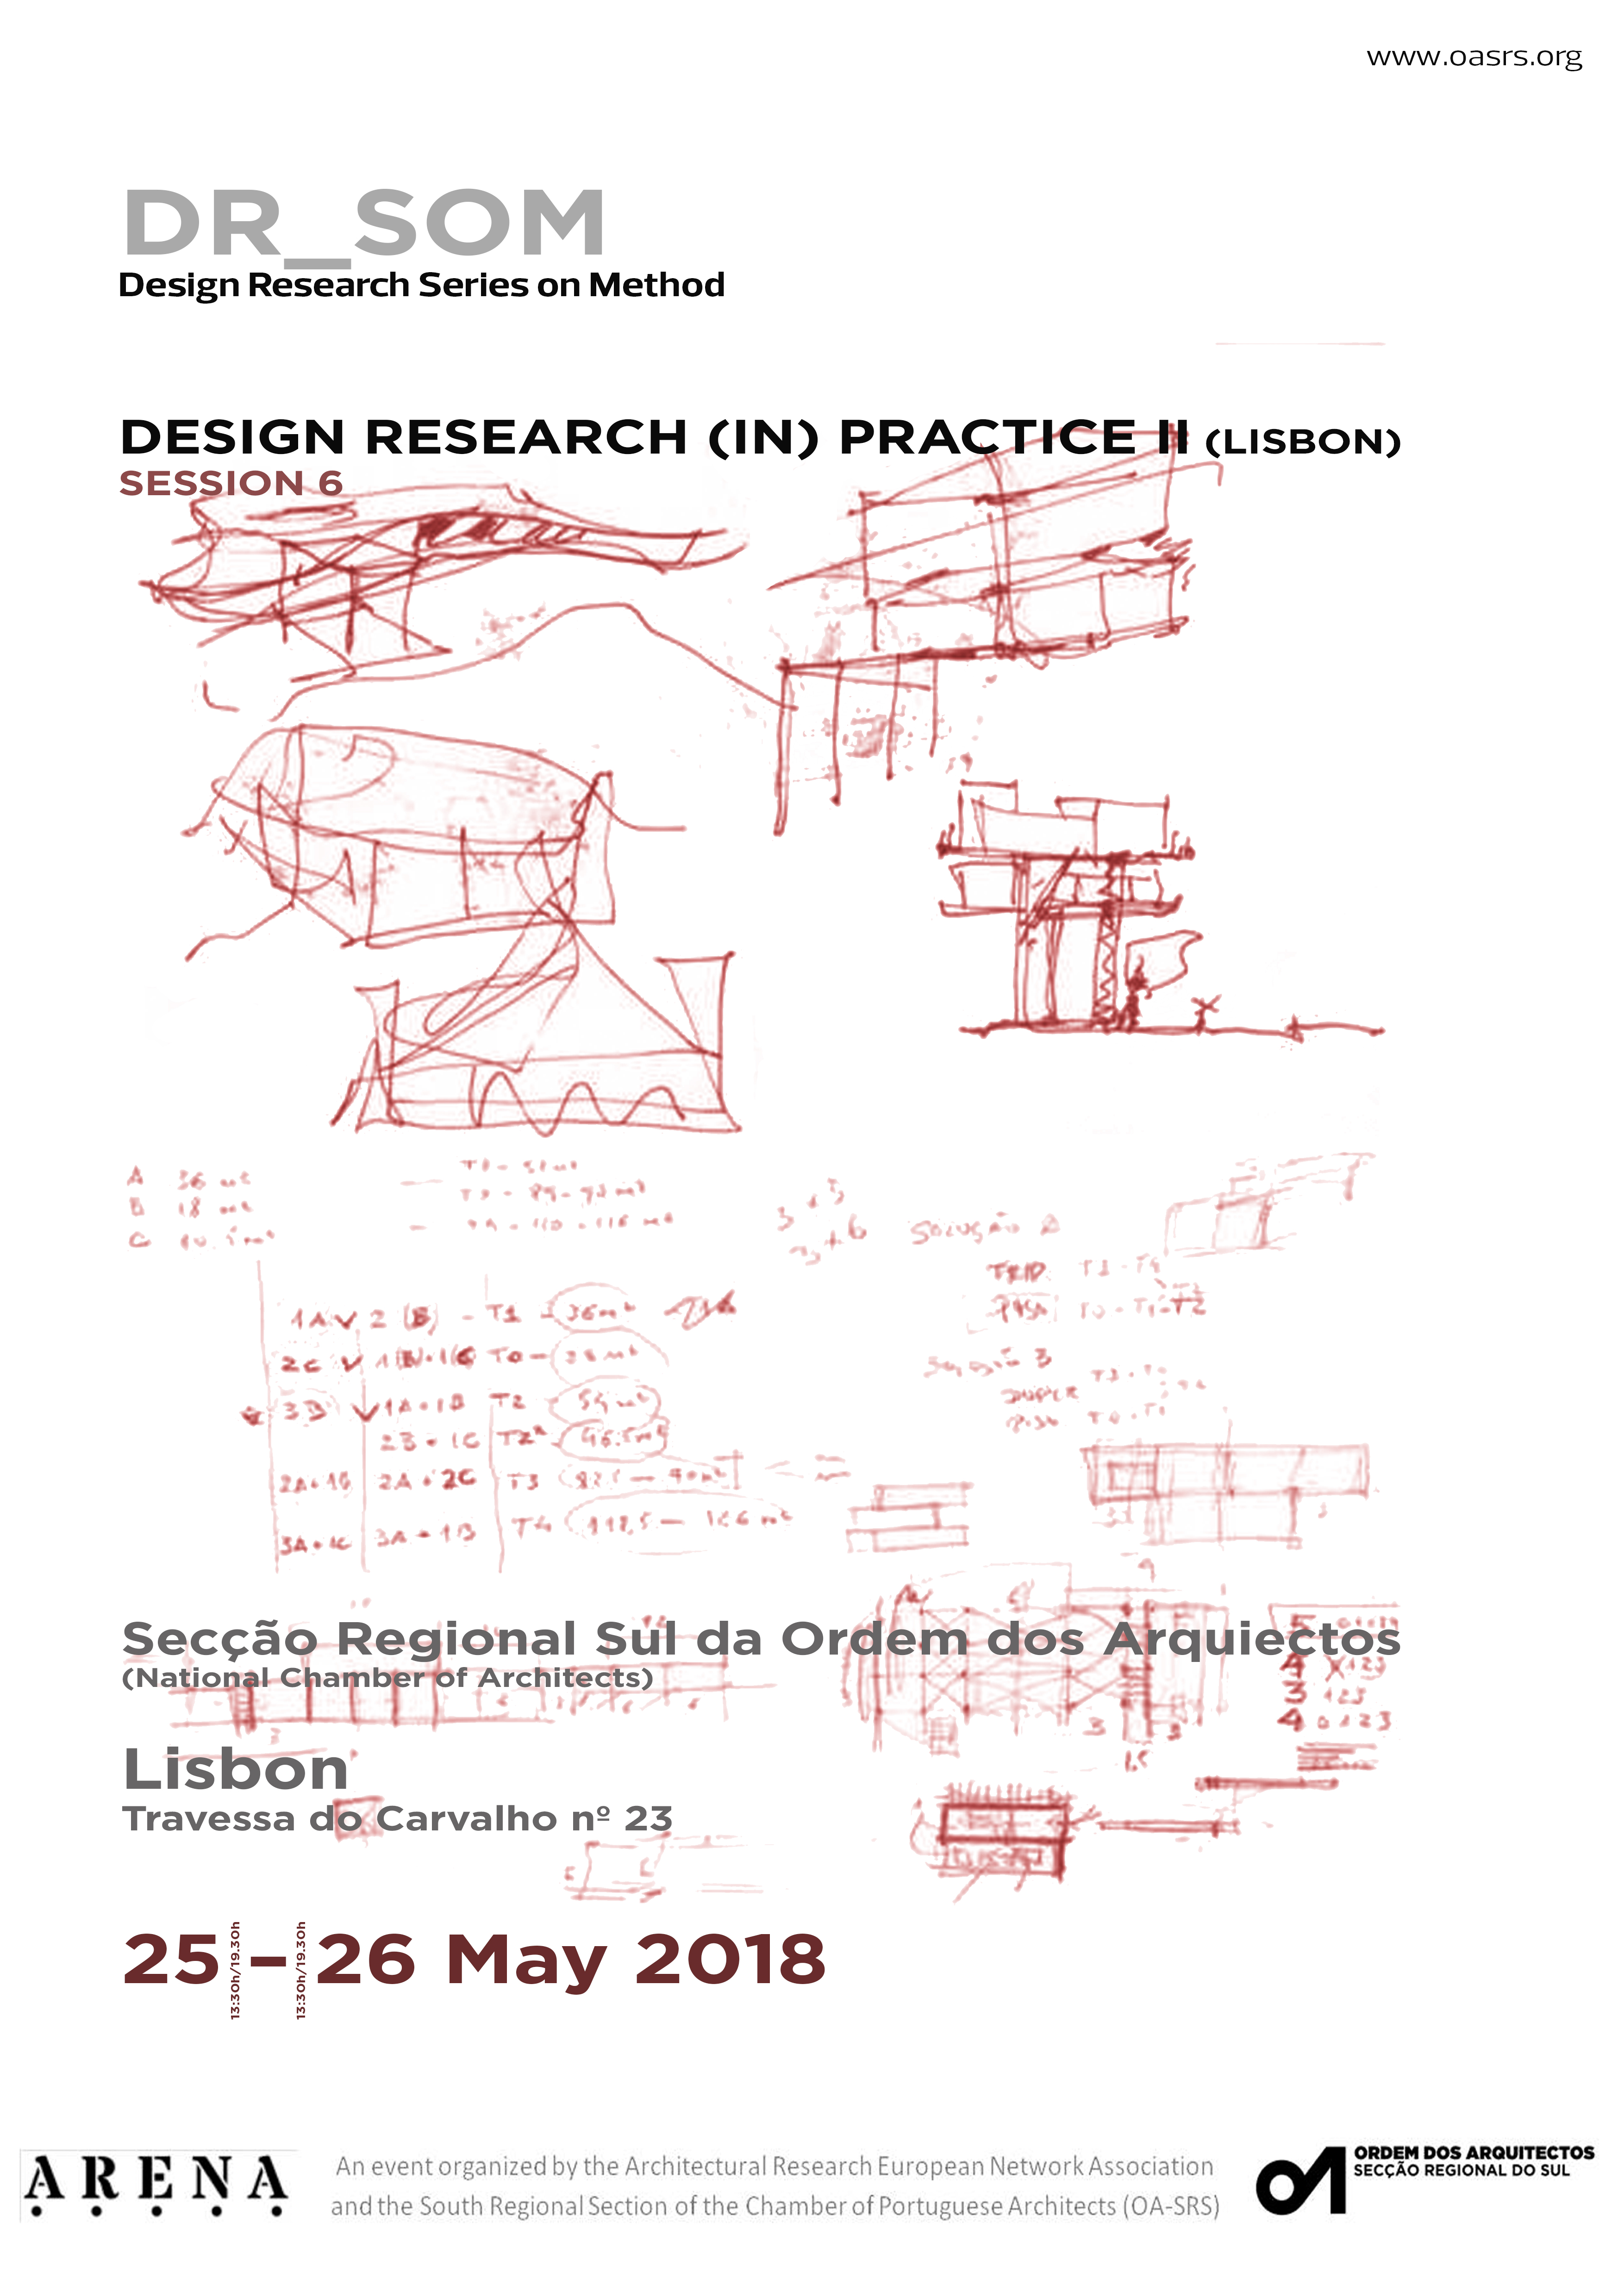 Design Research In Practice II Lisbon May - What is a design document